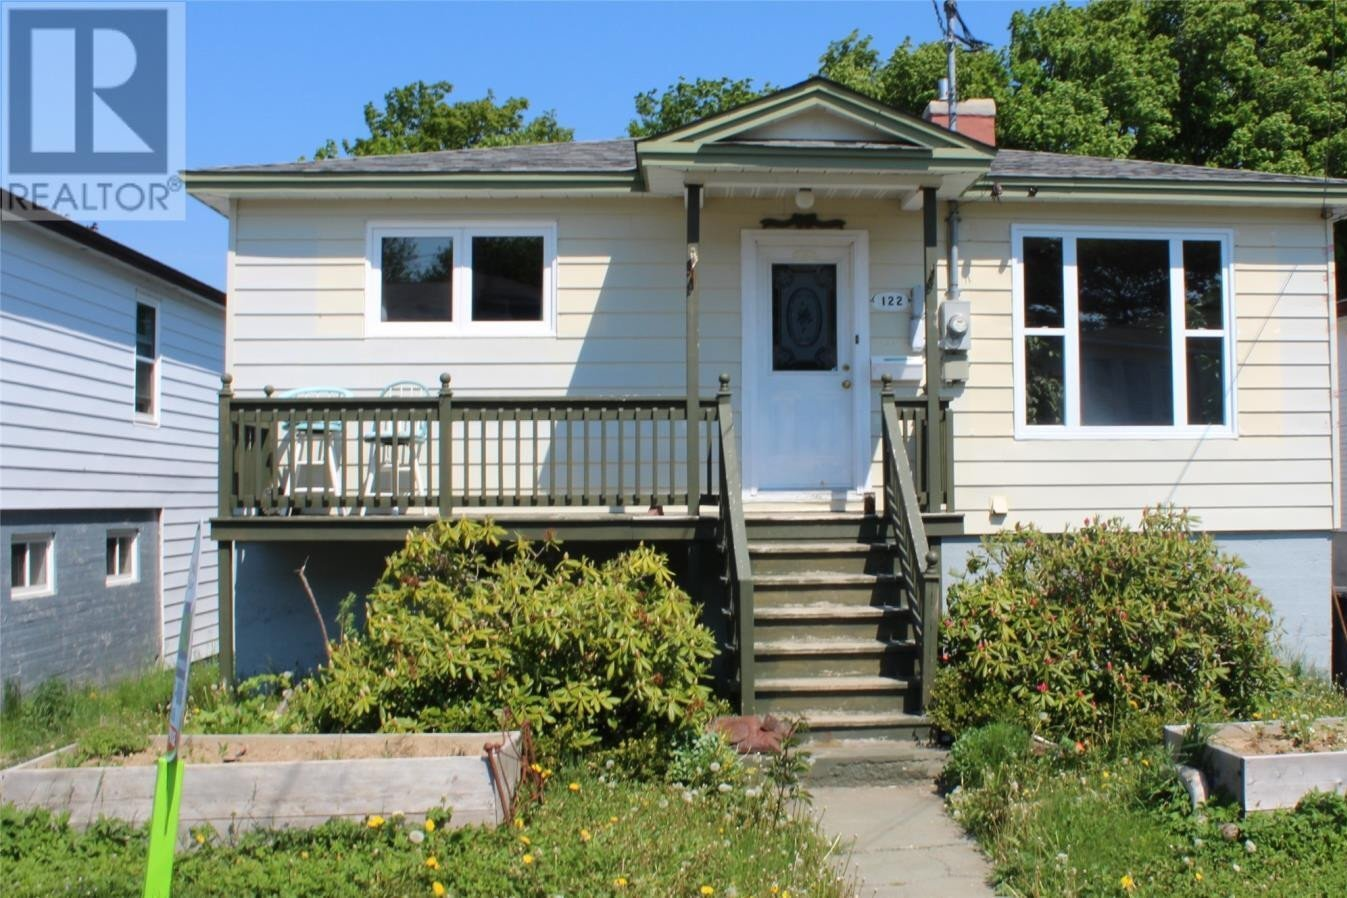 House for sale at 122 Prowse Ave St. John's Newfoundland - MLS: 1224922